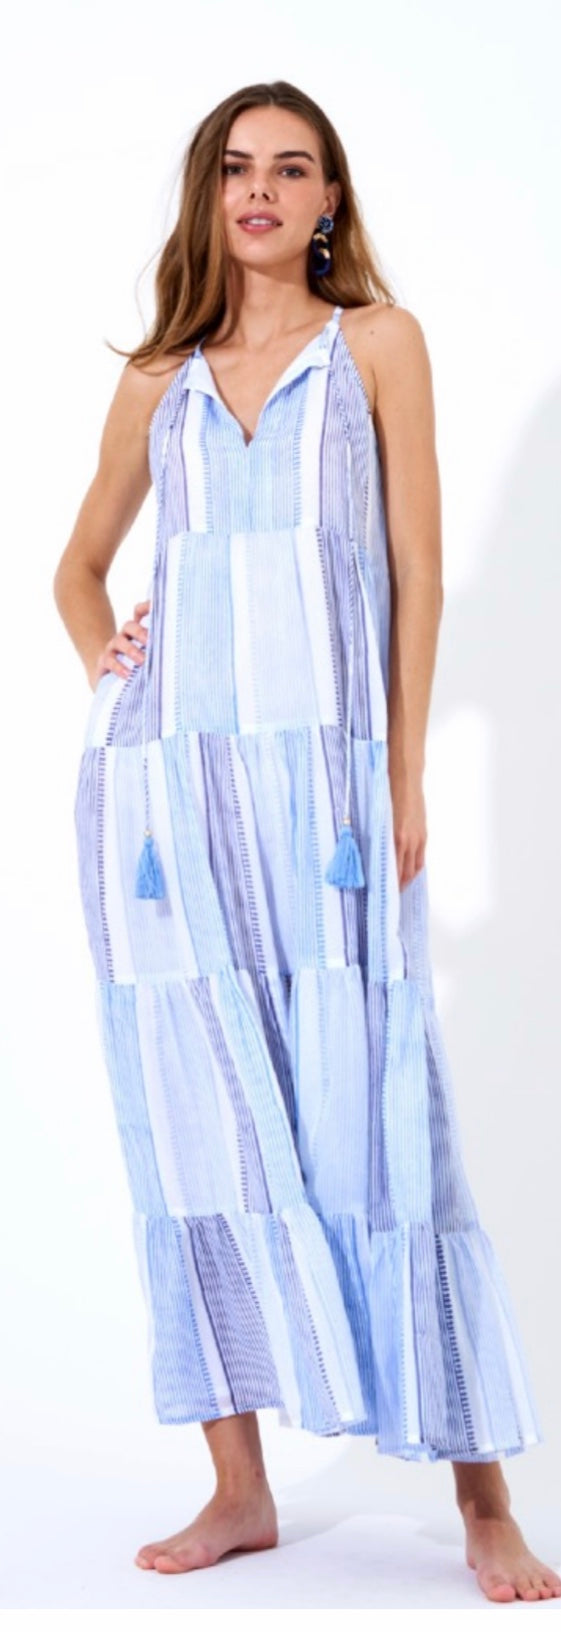 Camden Blue Long Tiered Tassle Dress By Oliphant